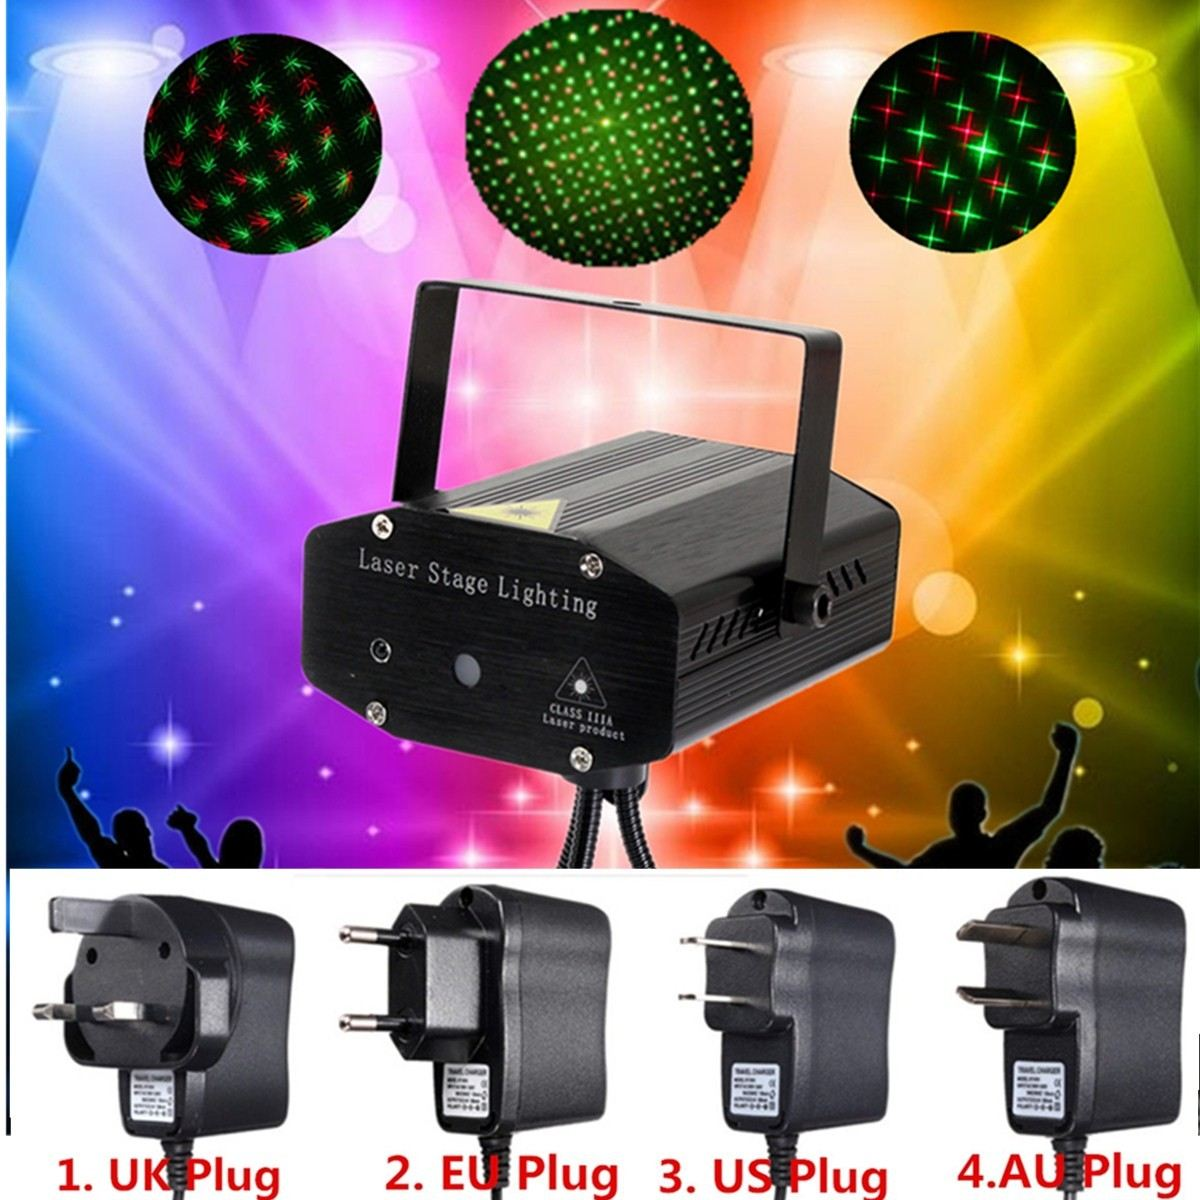 Remote Control Laser Projector Stage Light LED Night Lamp Hanging With Tripod DJ Club Pub Bar Disco Wedding Party Show Lighting opening 20 mm tripod with lamp red circle ship type switch kcd1 105 3 feet 2 file with lamp